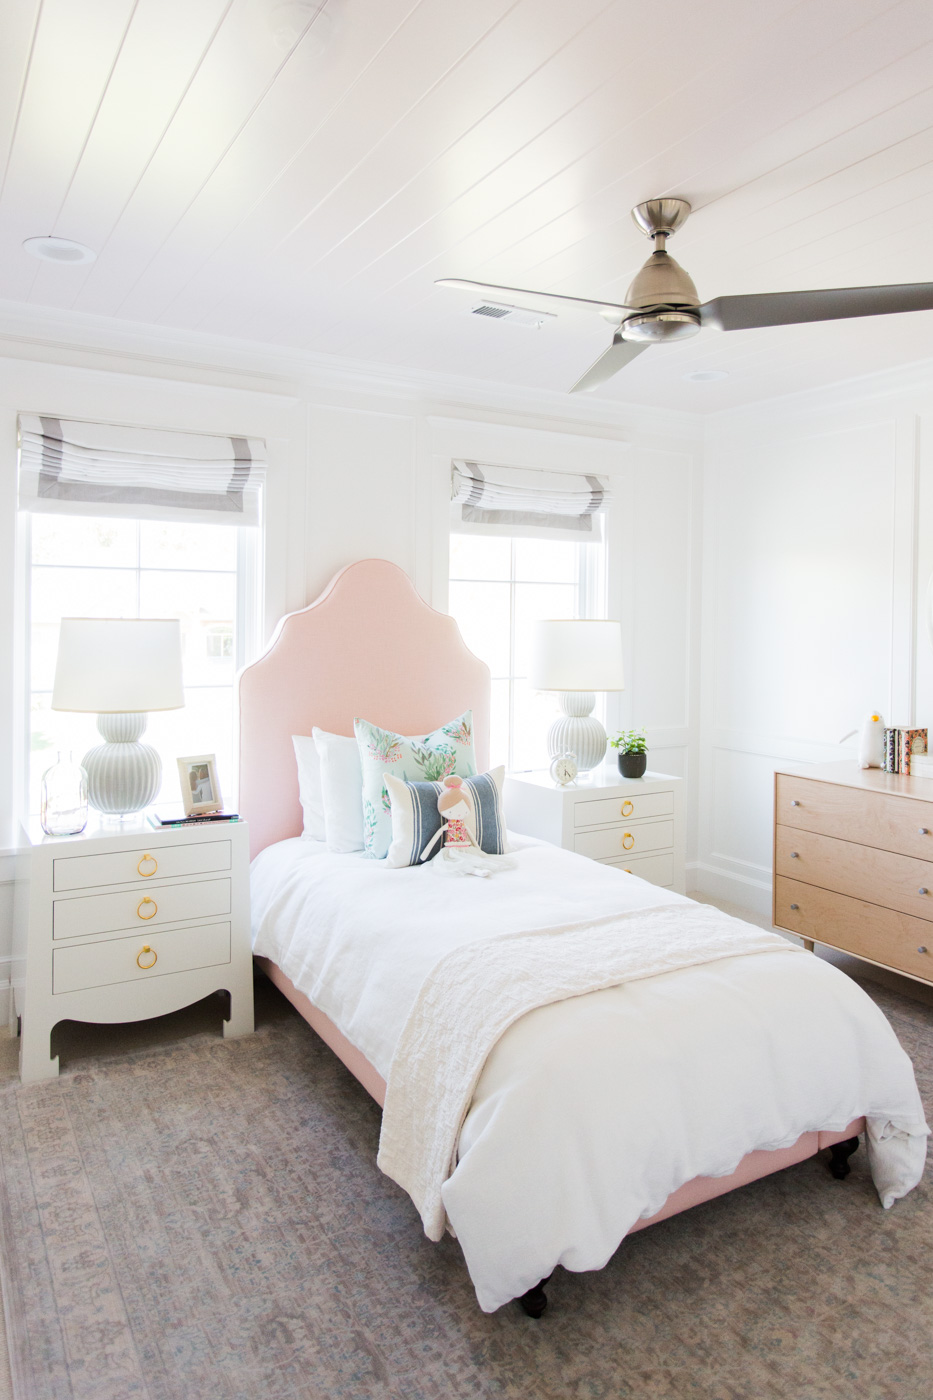 Sweet girls' room with pink headboard || Studio McGee